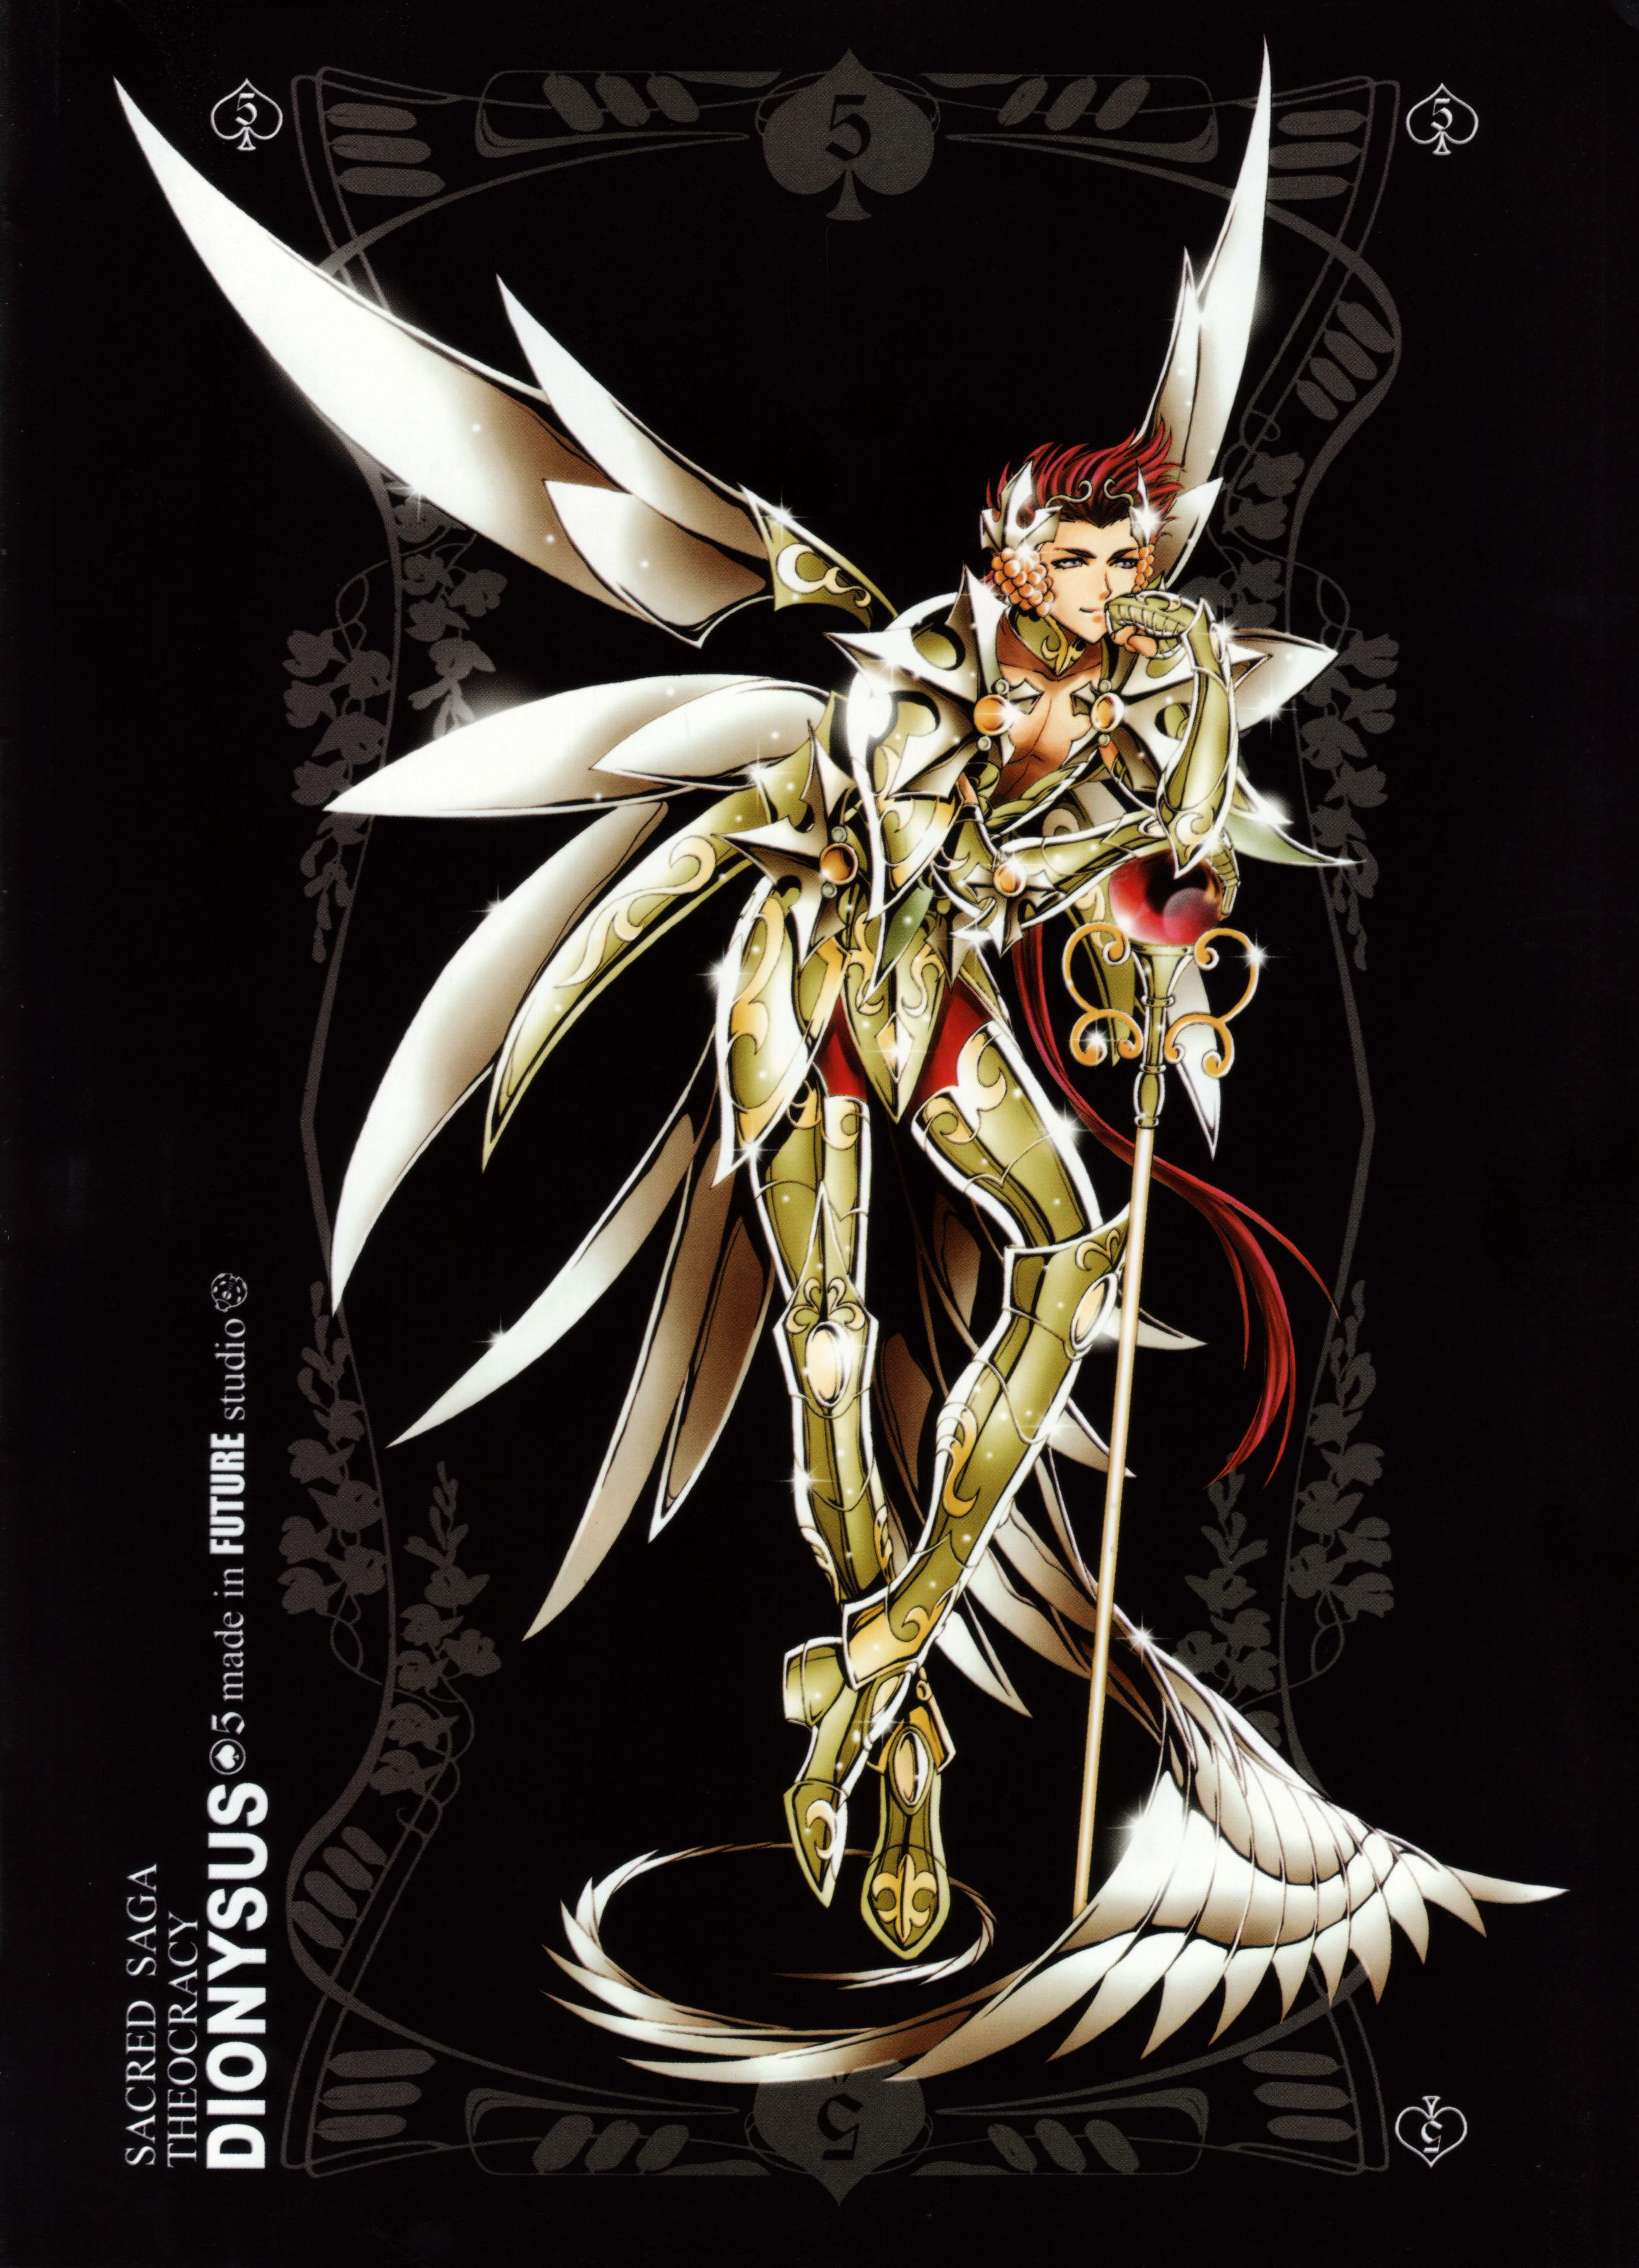 Download Saint Seiya: Future Studio ~ Dionysus God of Wine (2525x3493) - Minitokyo